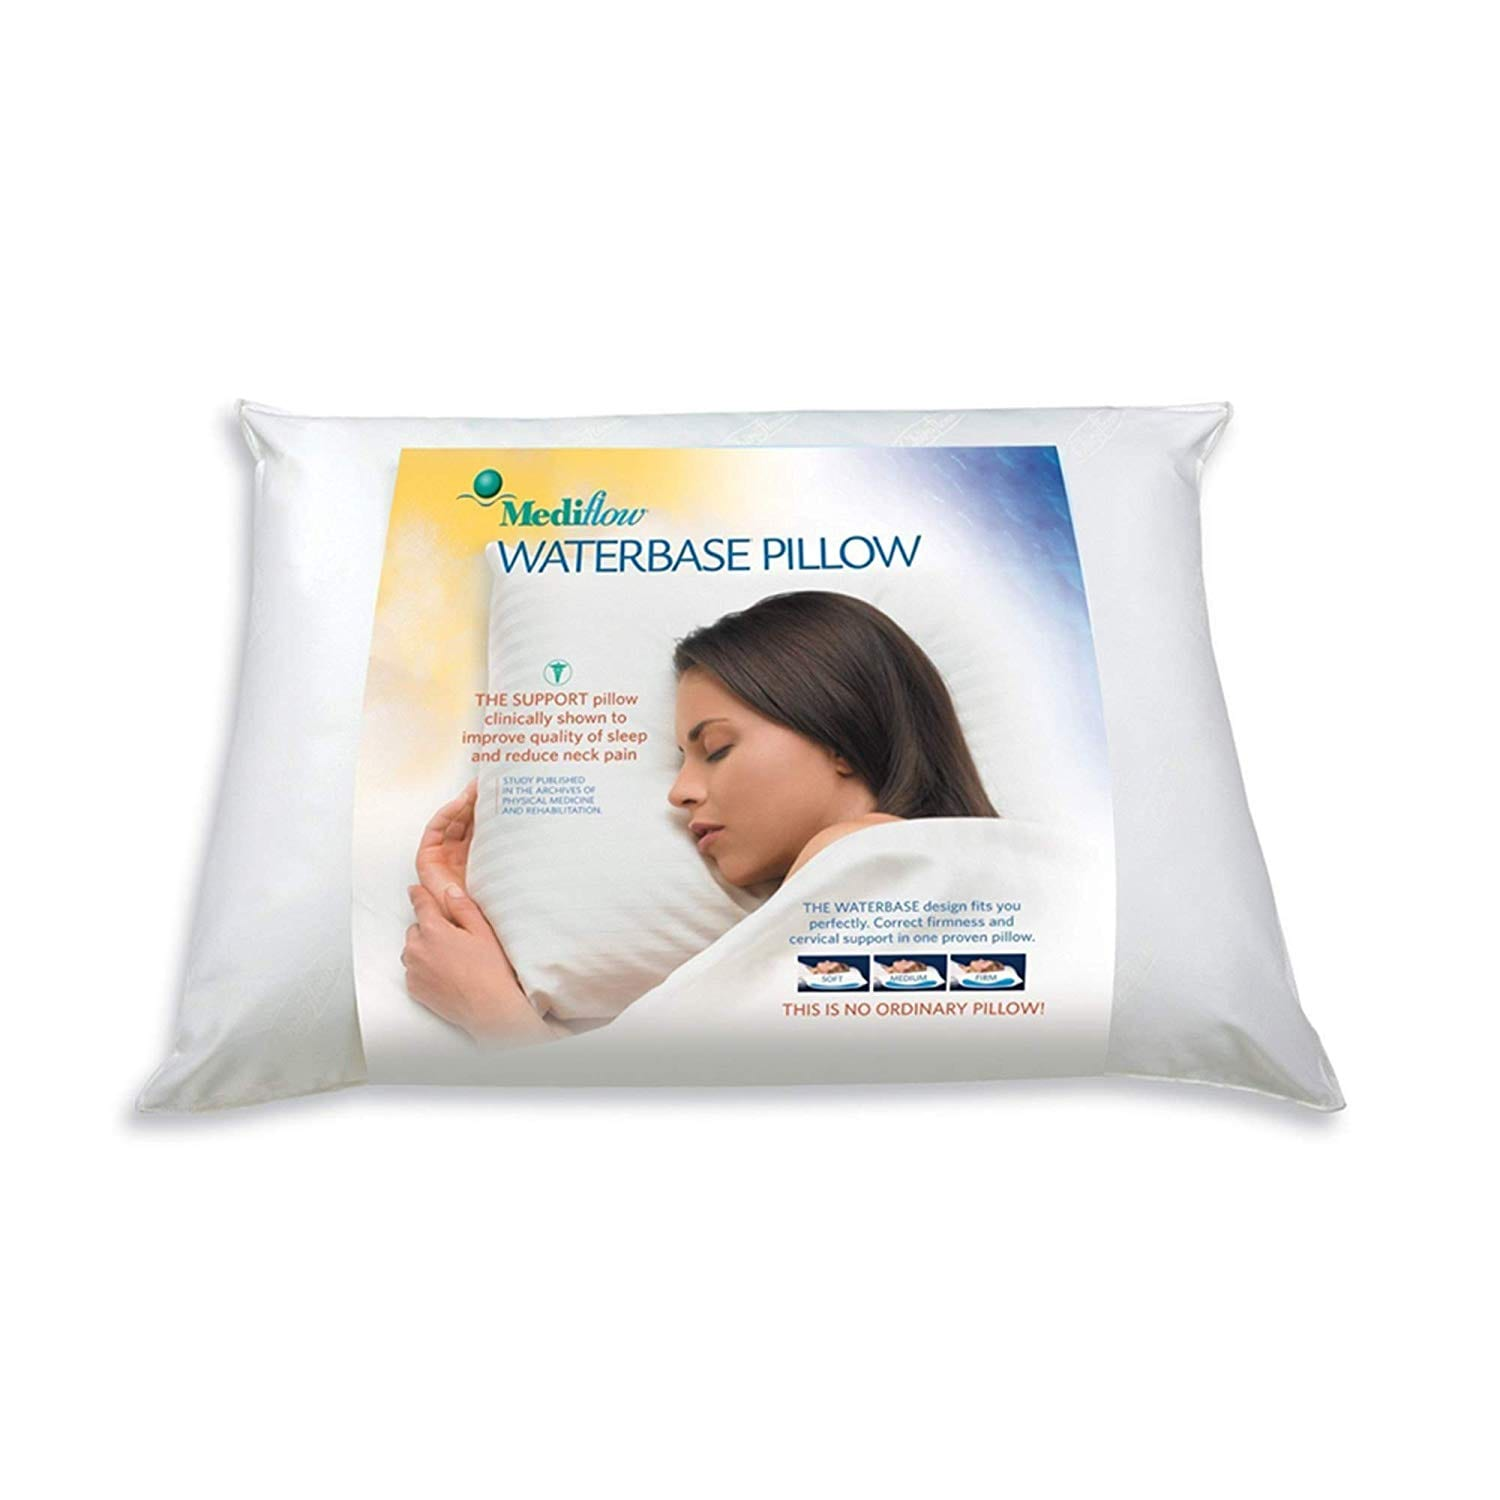 Mediflow best pillow for side sleepers review by www.dailysleep.org